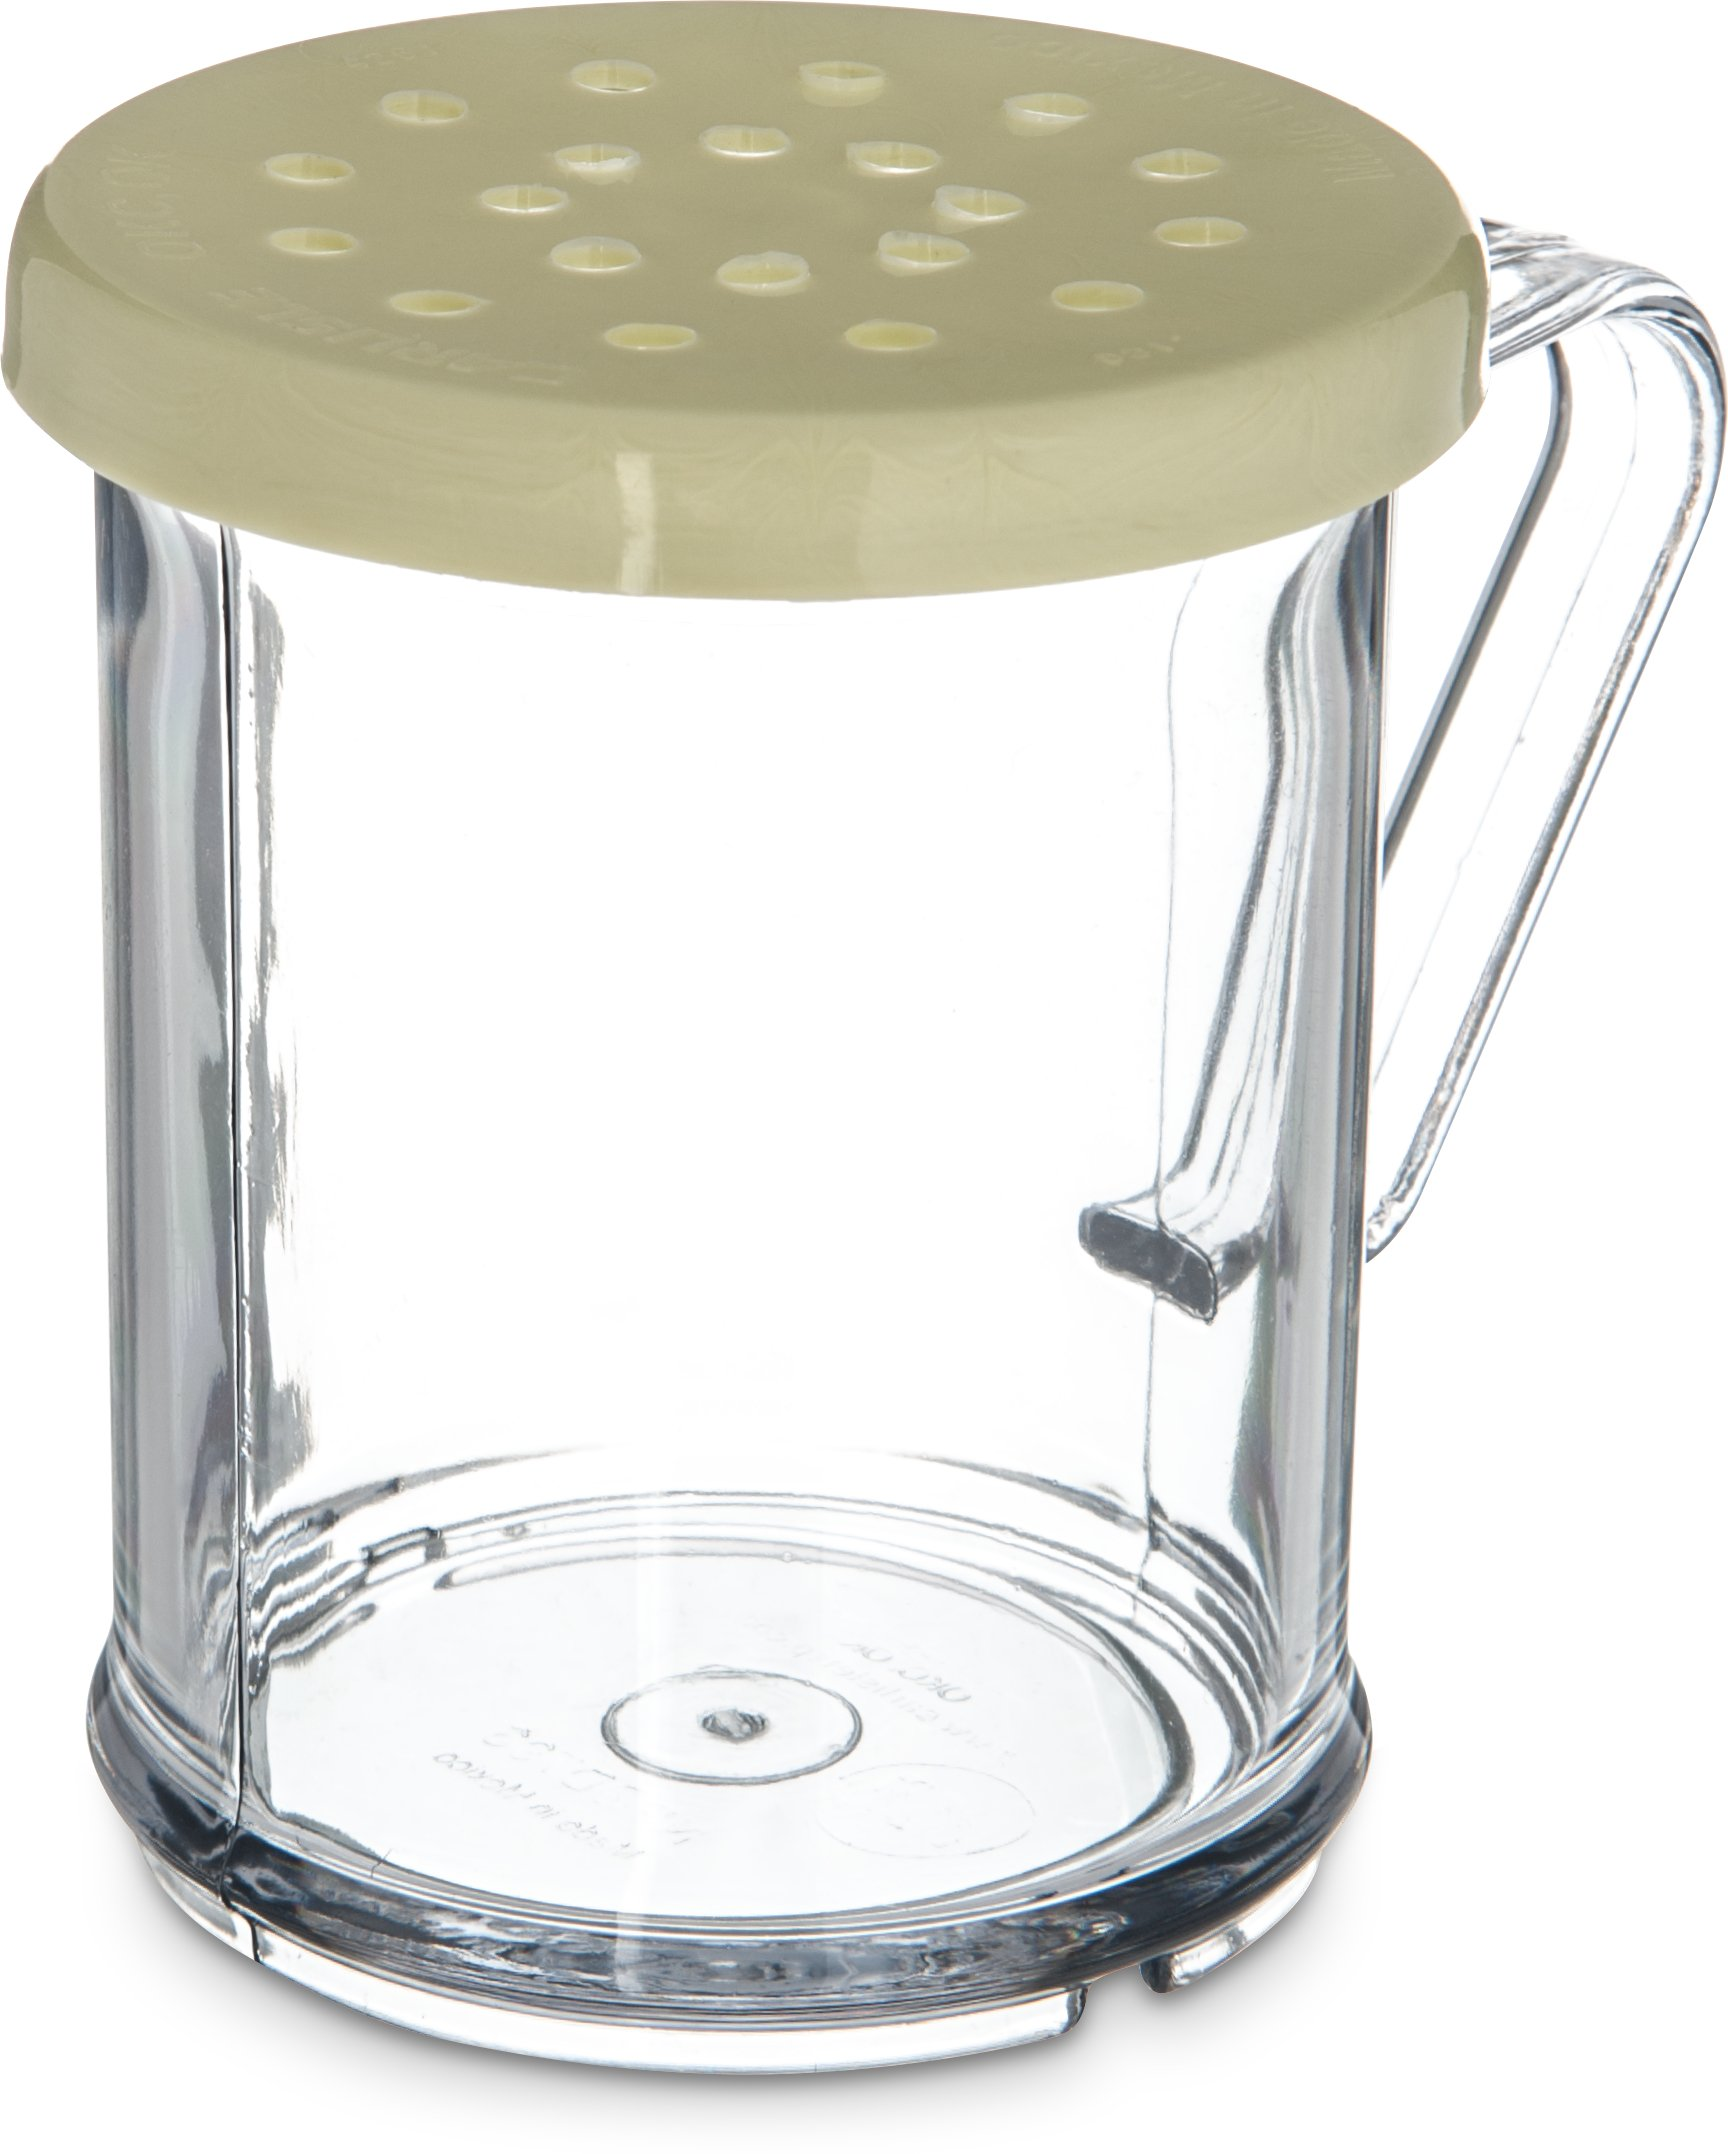 Carlisle 426004 Polycarbonate Cheese Shaker/Dredge with Lid, 1 Cup Capacity, Yellow (Pack of 12) by Carlisle